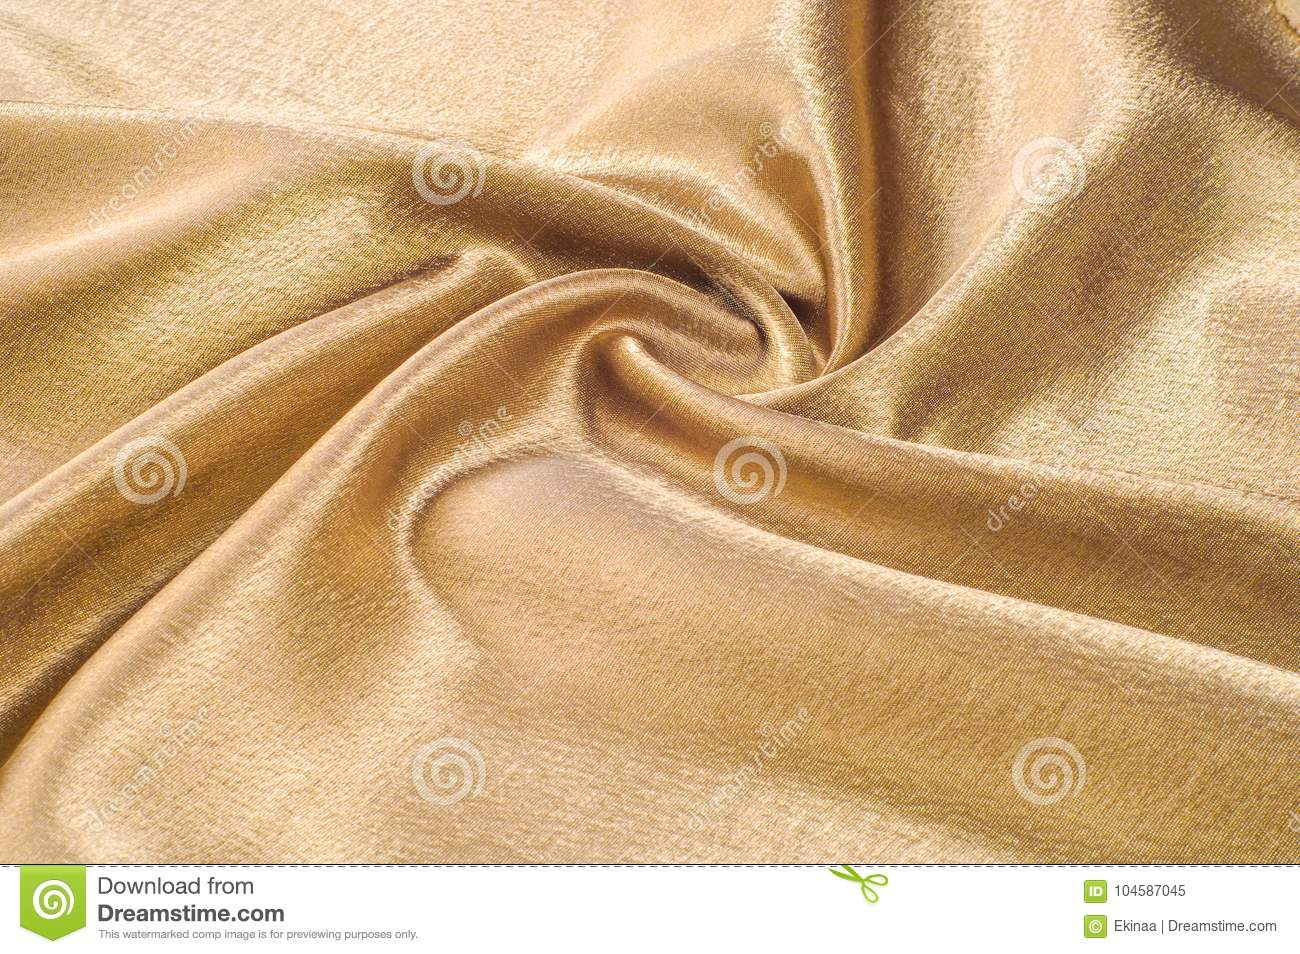 Fabric made of silk fabric metal thread metallic sheen gold. Just like looking at a stunning waterfall, this golden yellow Silk C